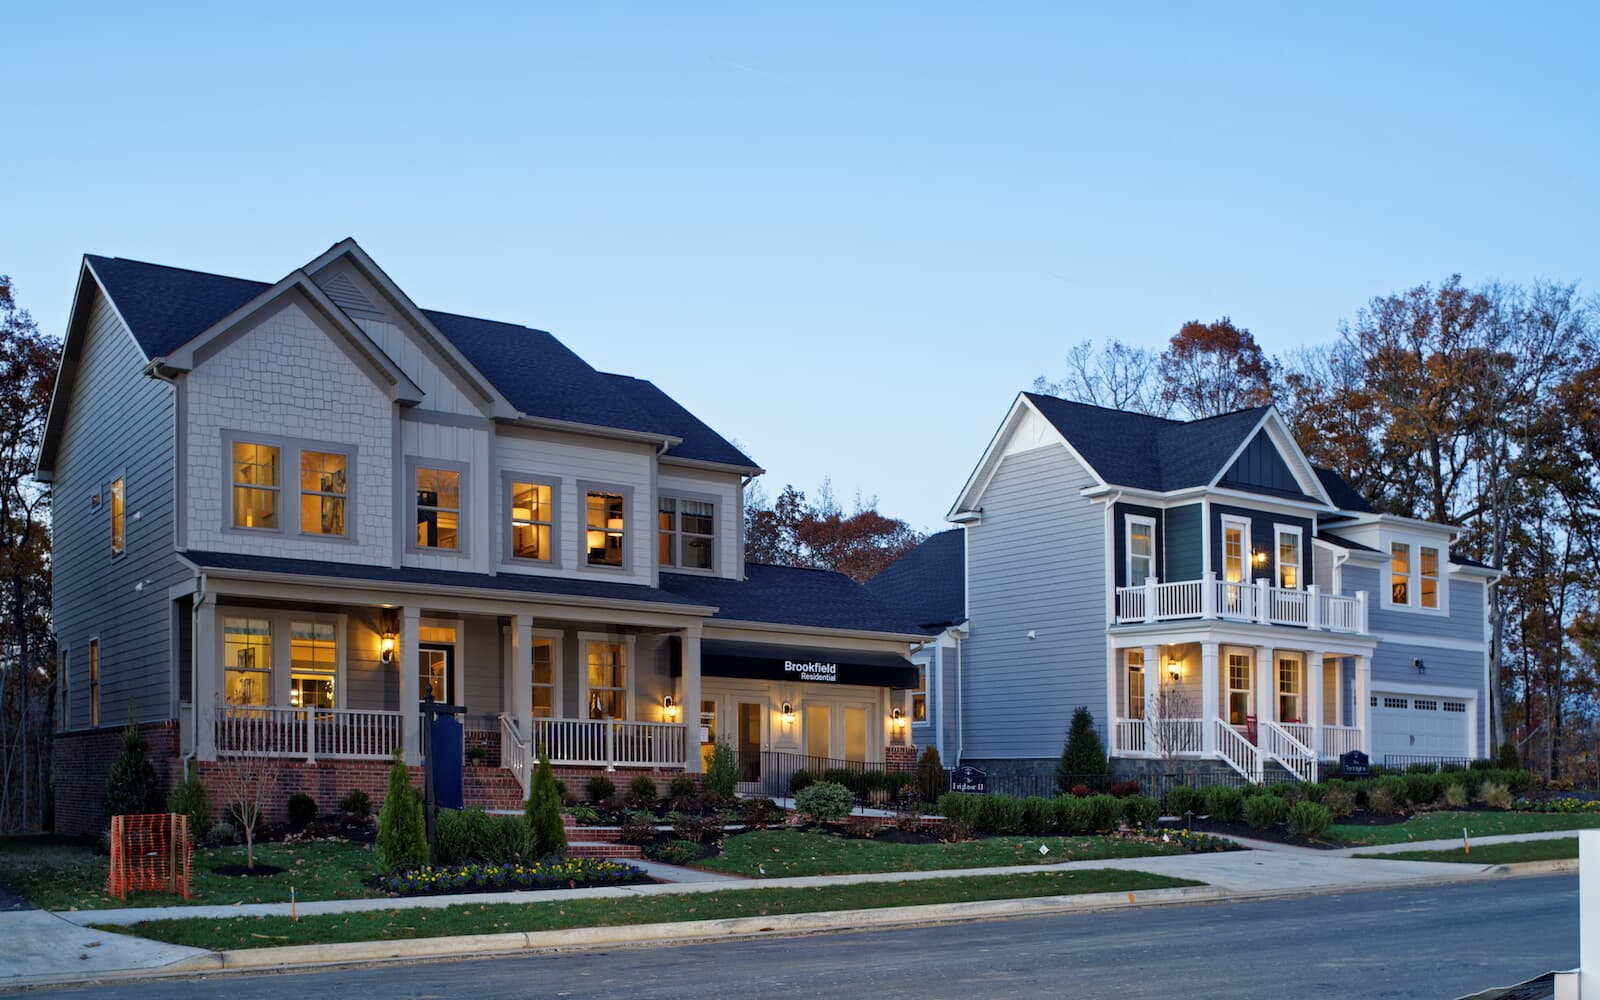 A streetscape of Brookfield Residential homes in Prince William County VA